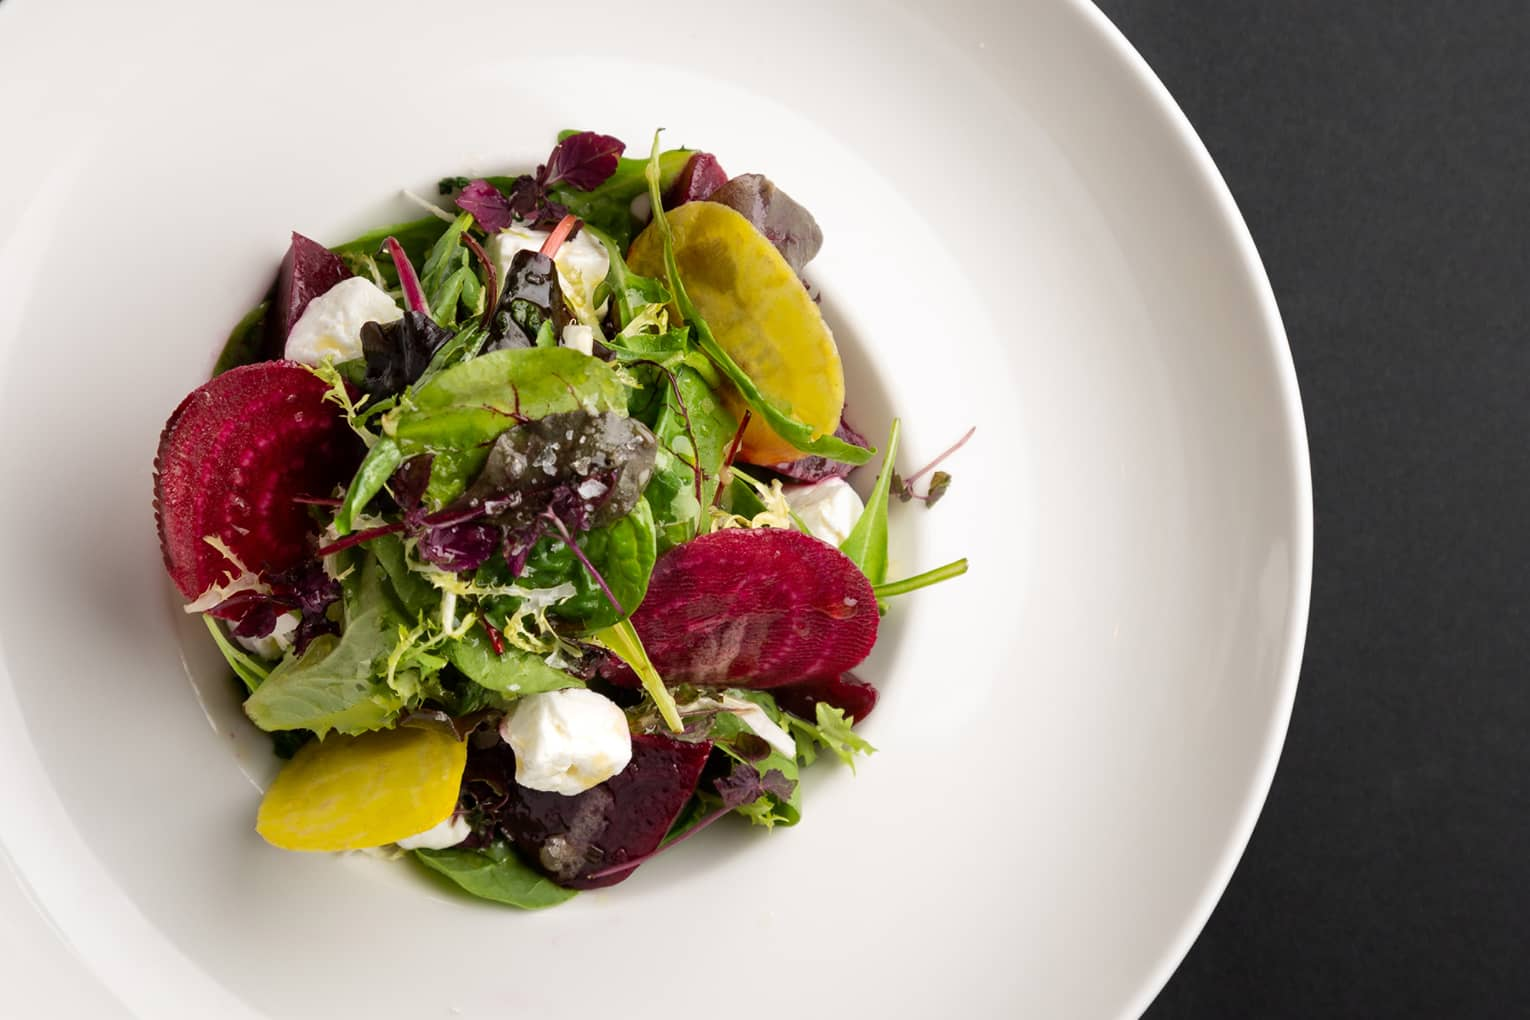 Red and gold beet salad with feta cheese, orange and pistachio